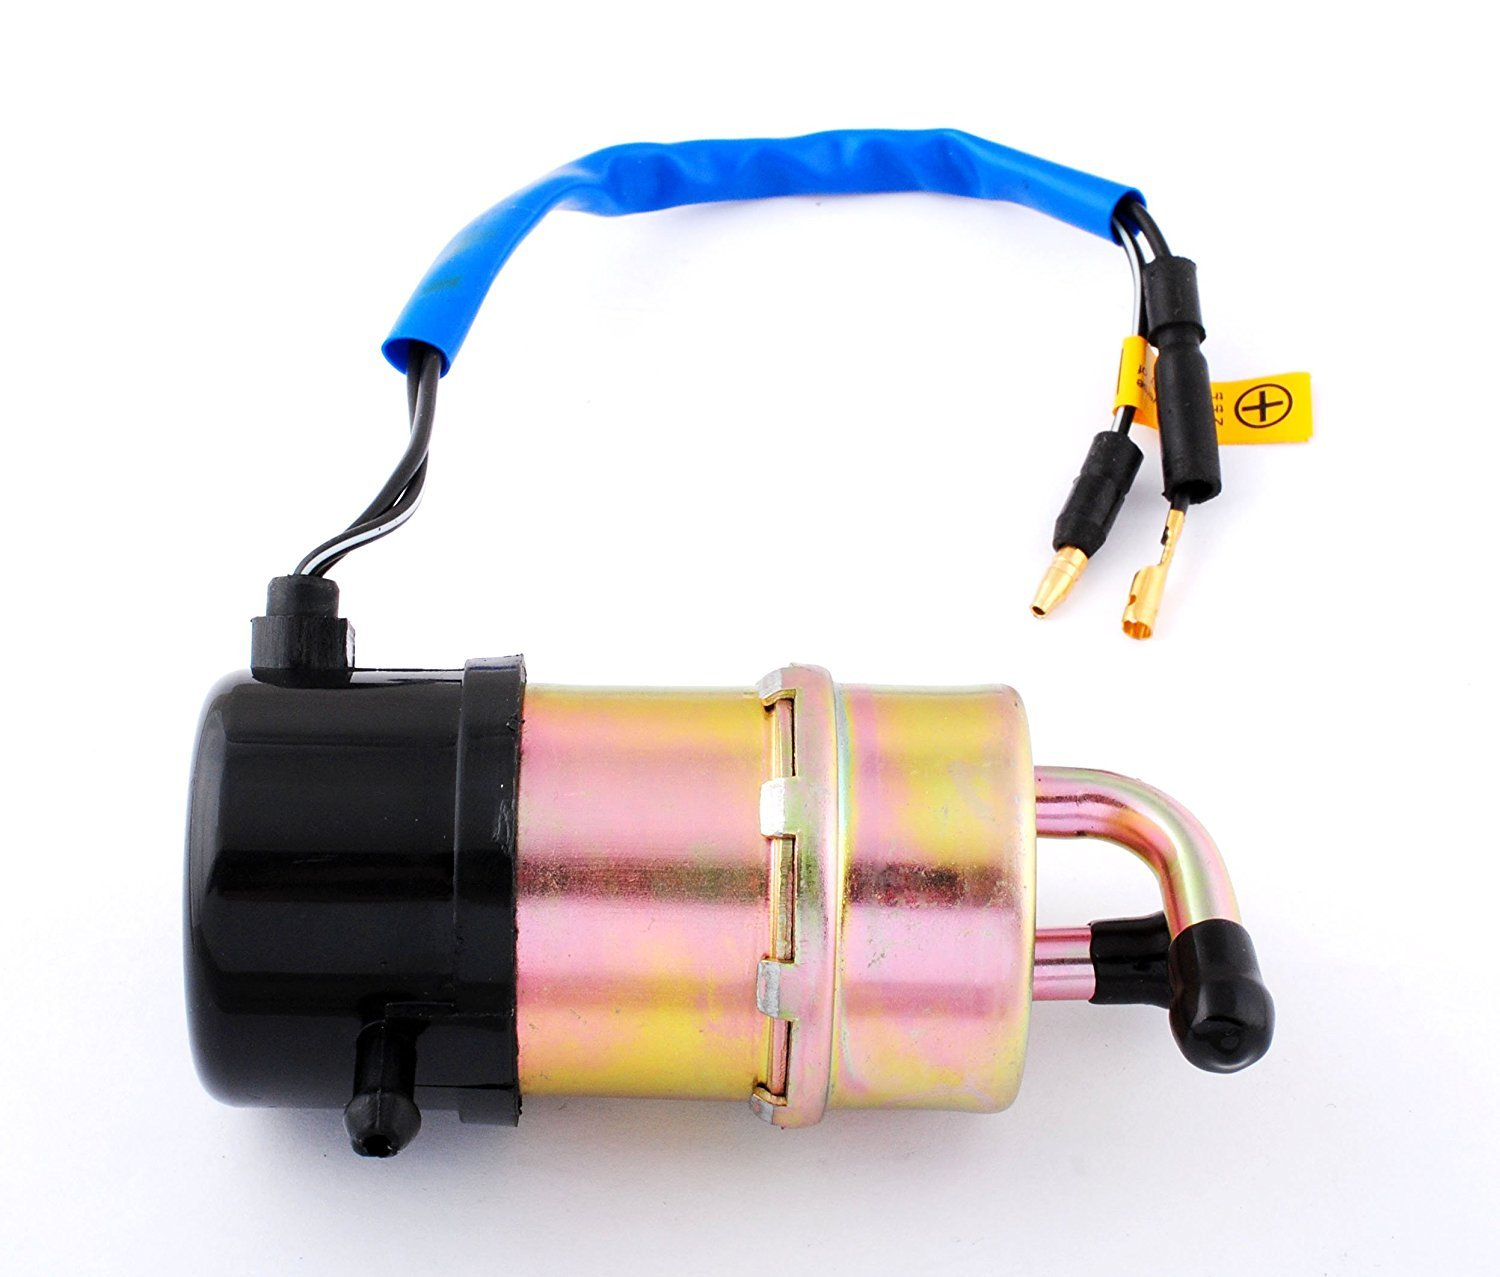 Podoy 350 Fuel Pump 16710 Ha7 672 With Am116304 Honda Foreman 400 Filter For Fourtrax 86 89 Trx 350d 4x4 Automotive